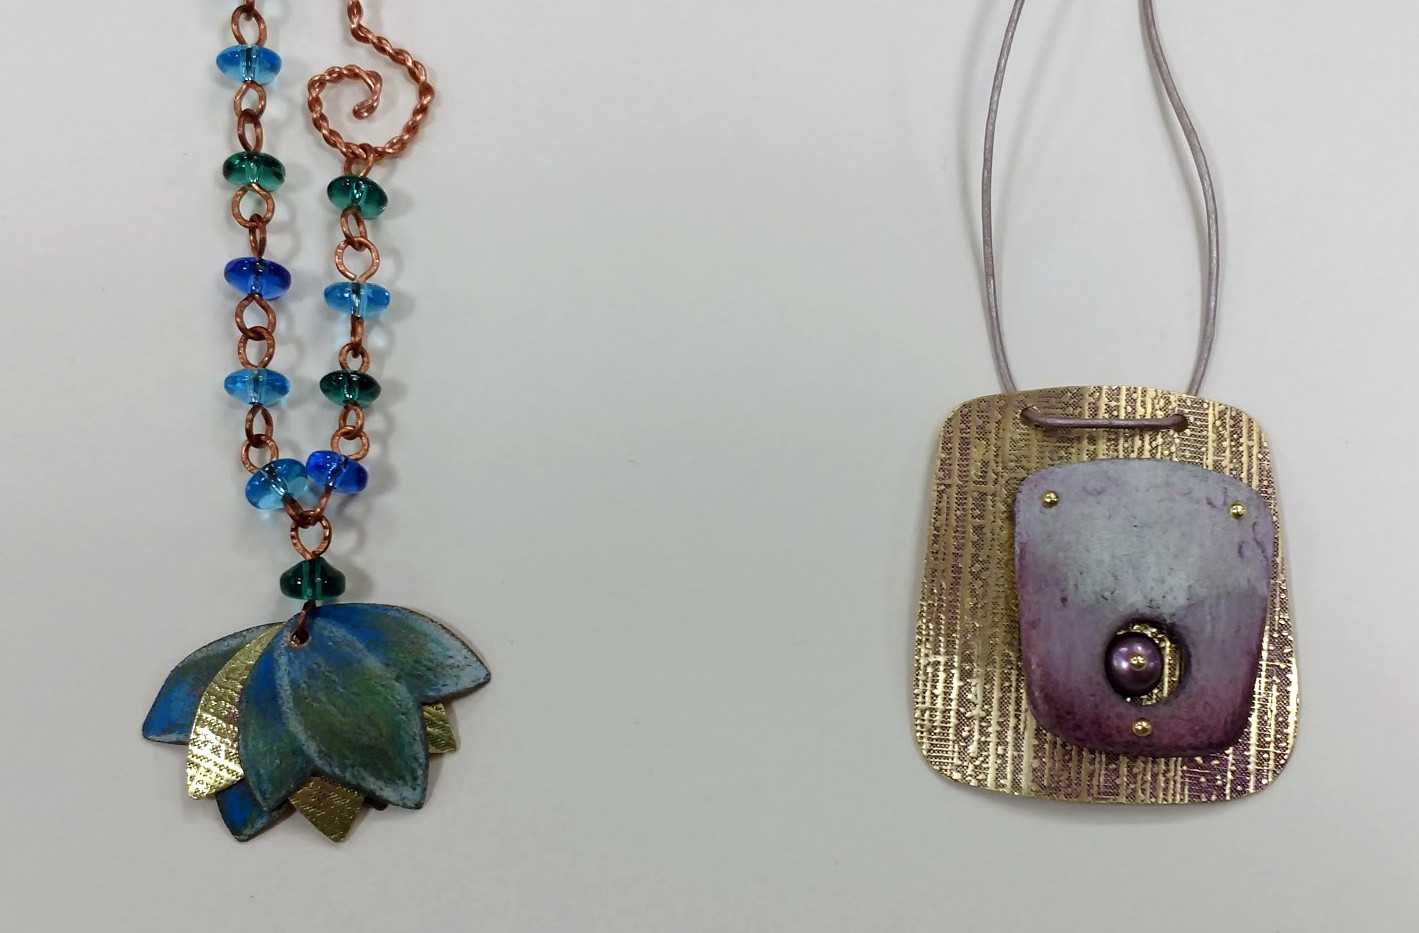 Samples of color pencil on metal by Angi